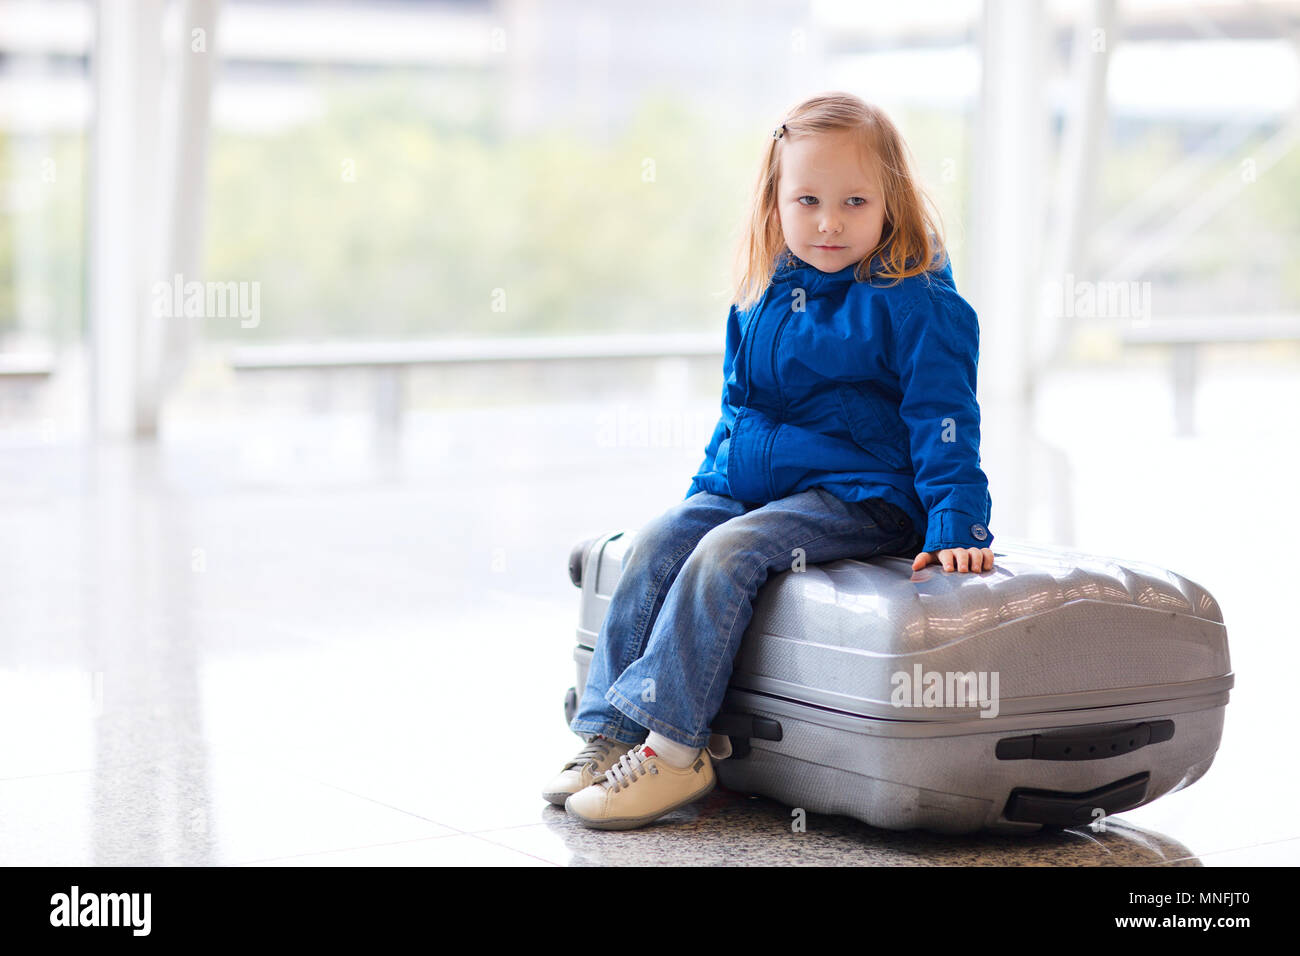 Adorable little girl at airport sitting on suitcase Stock Photo